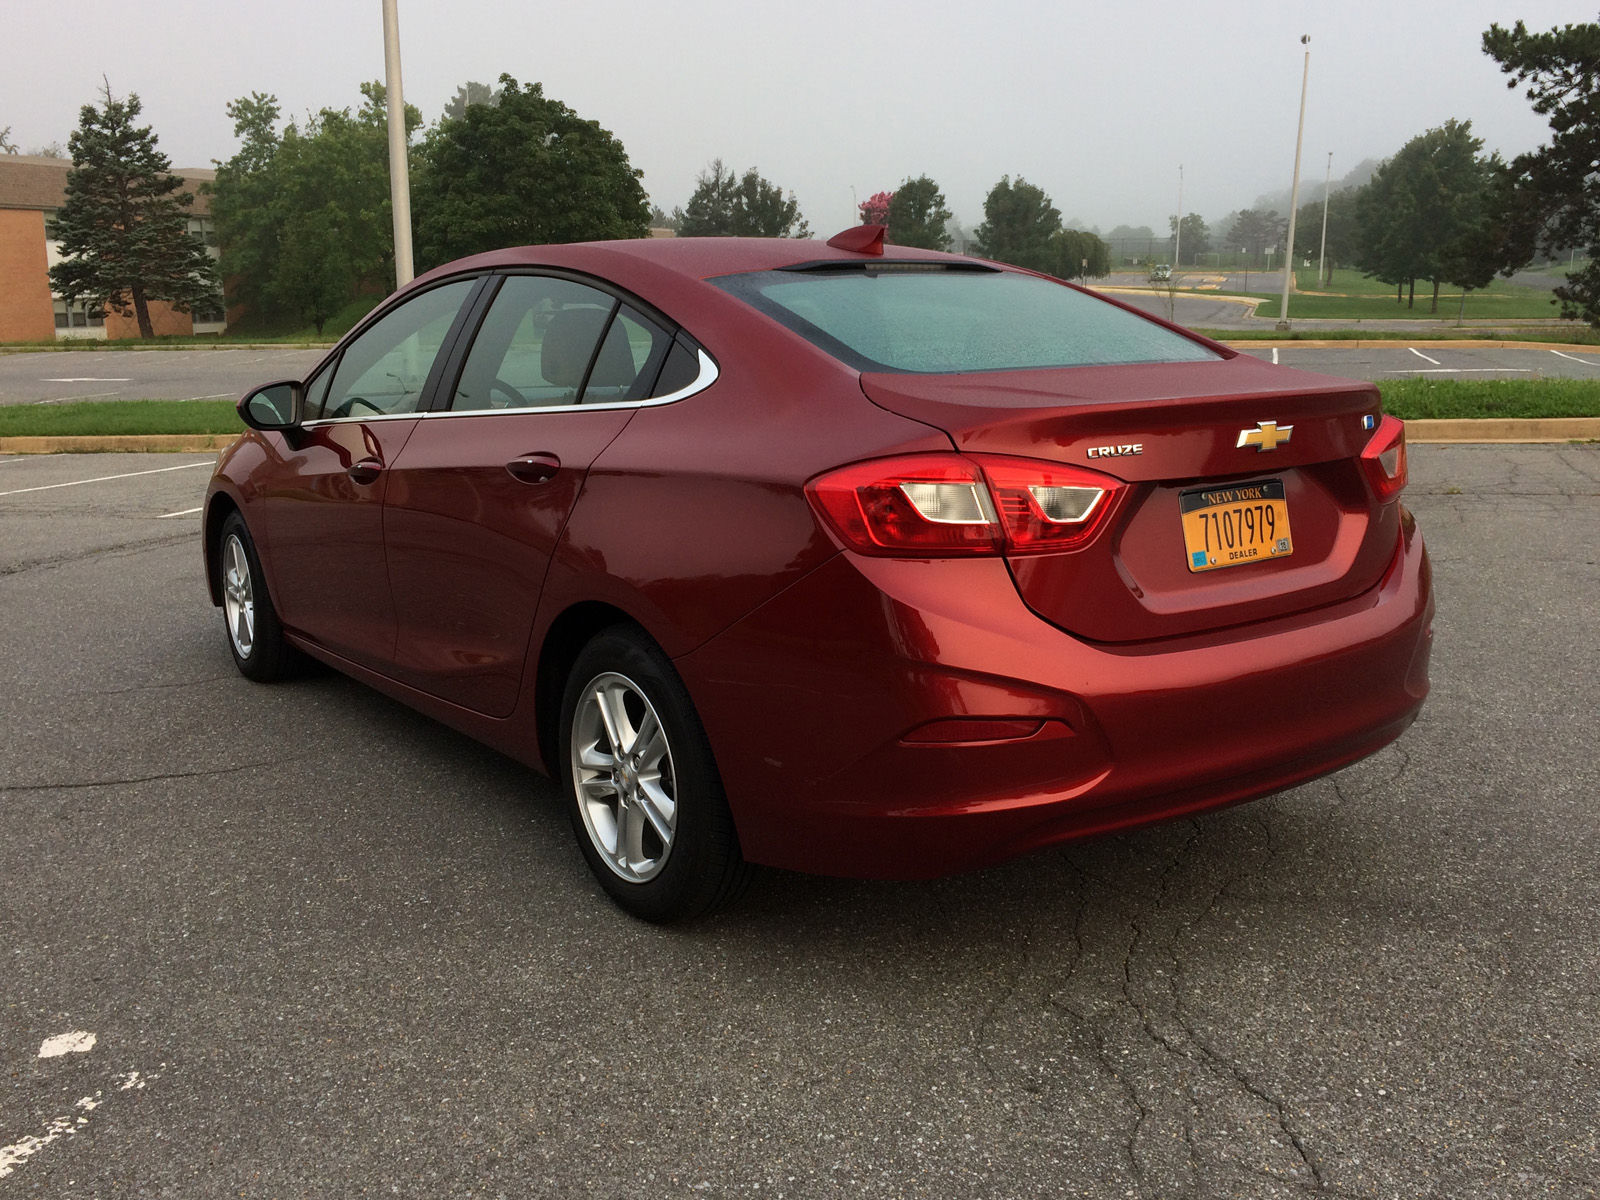 Car Review: The Chevrolet Cruze Diesel delivers a compact sedan with